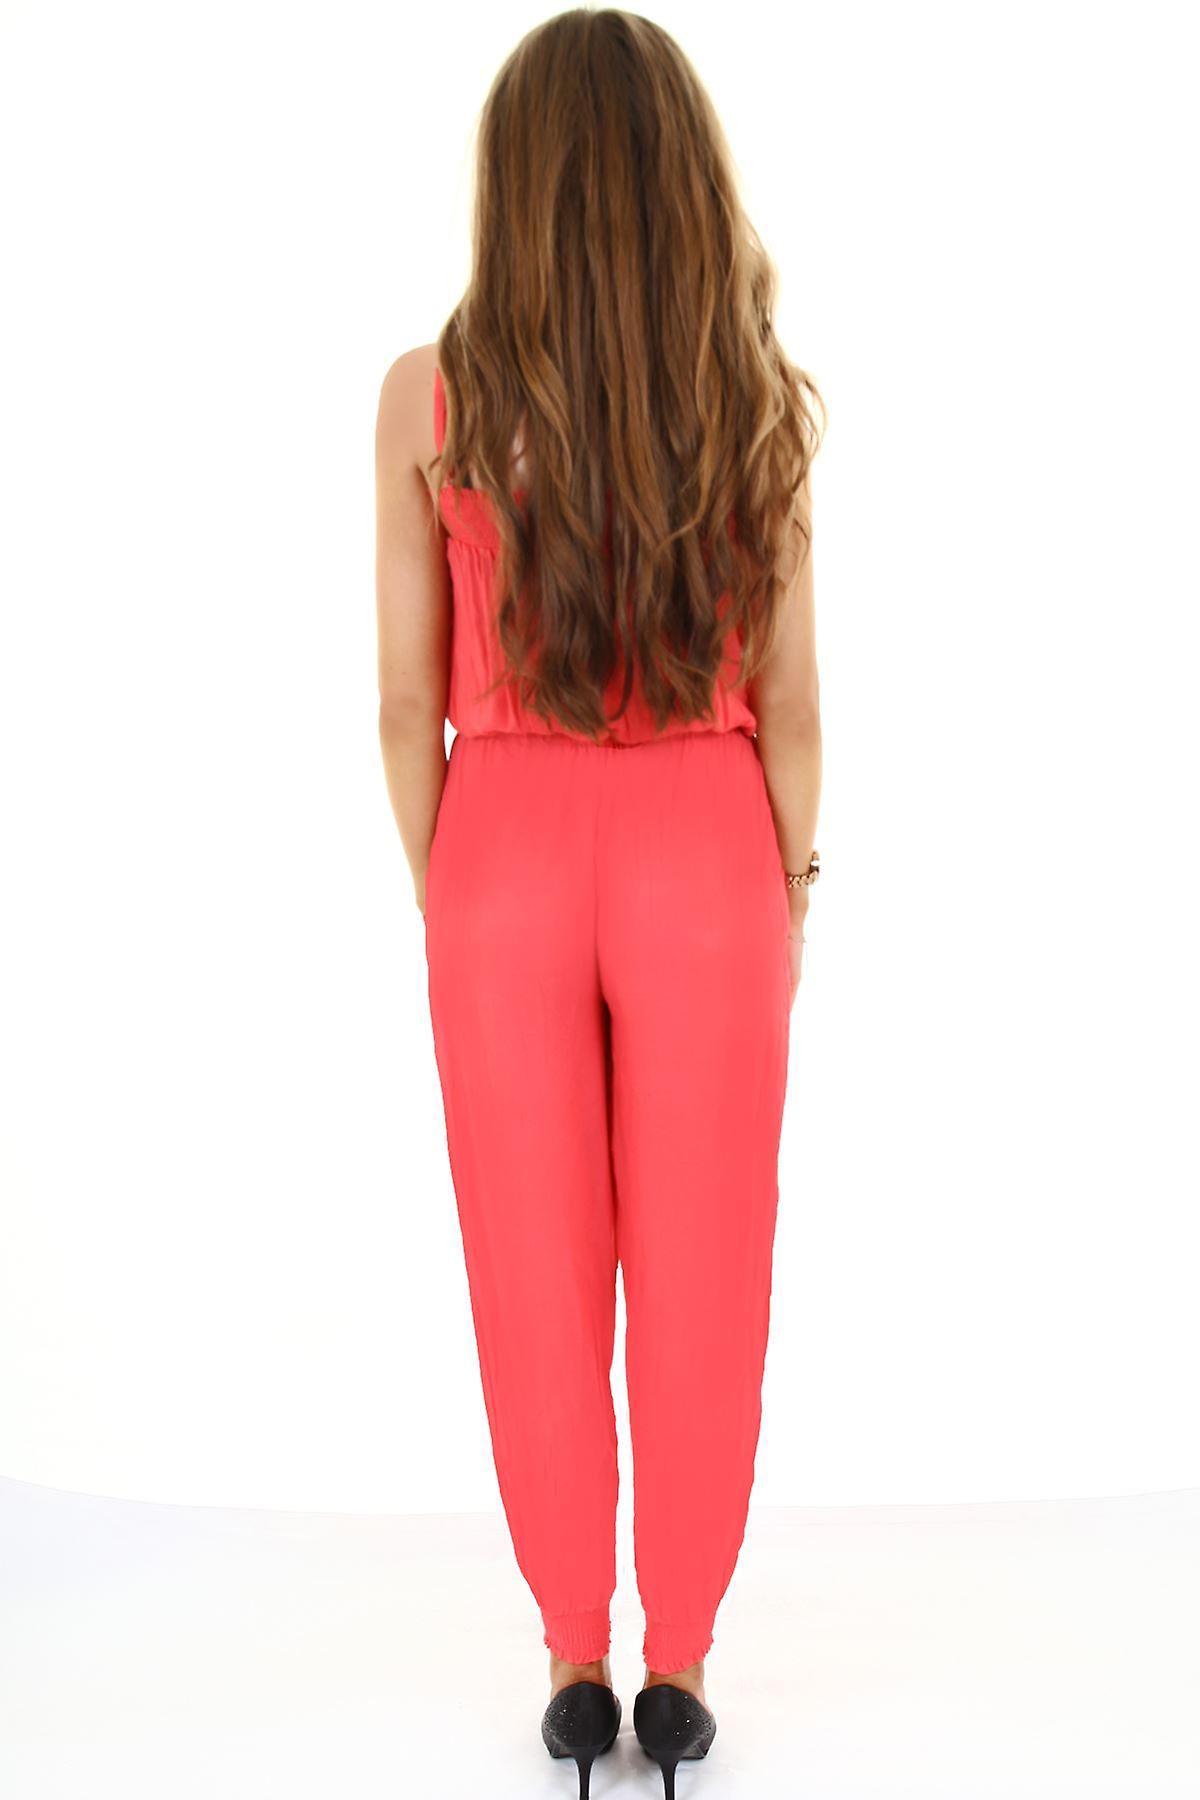 Ladies Strappy Plain Elasticated Waist Stretch Women's Summer All In One Jumpsuit